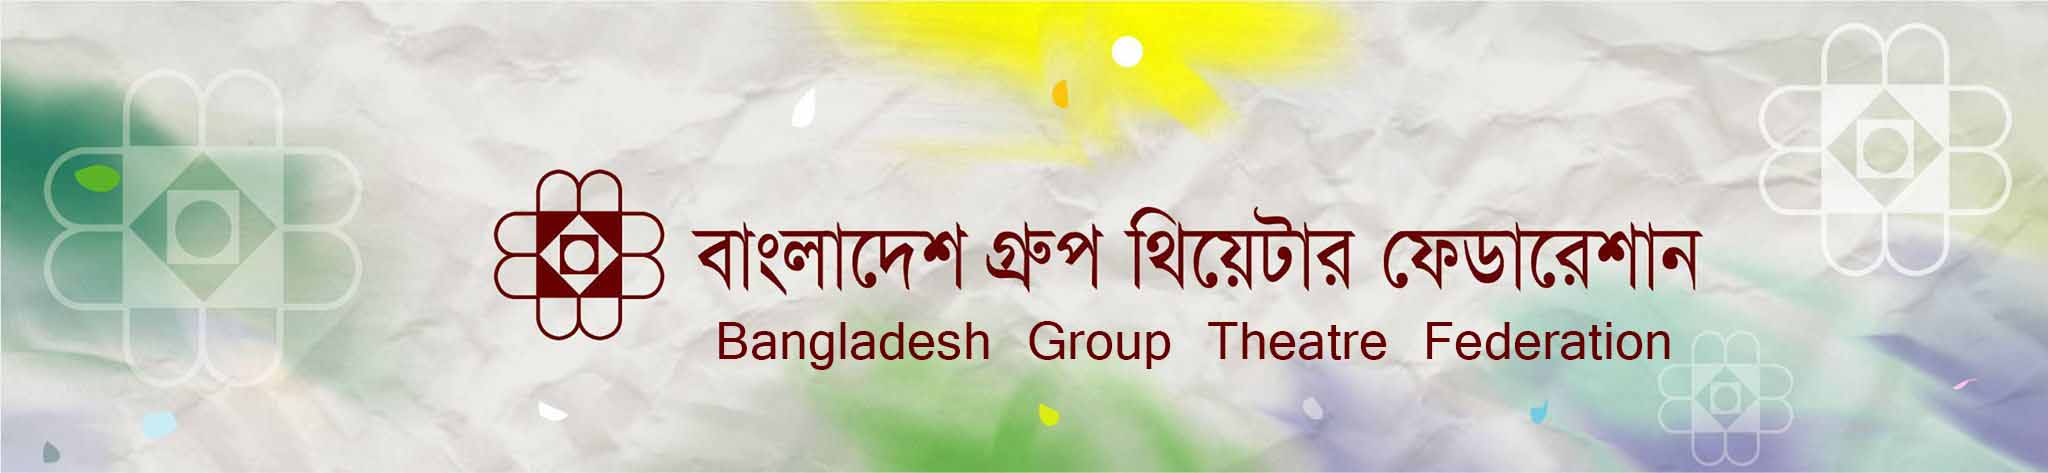 Bangladesh Group Theatre Federation